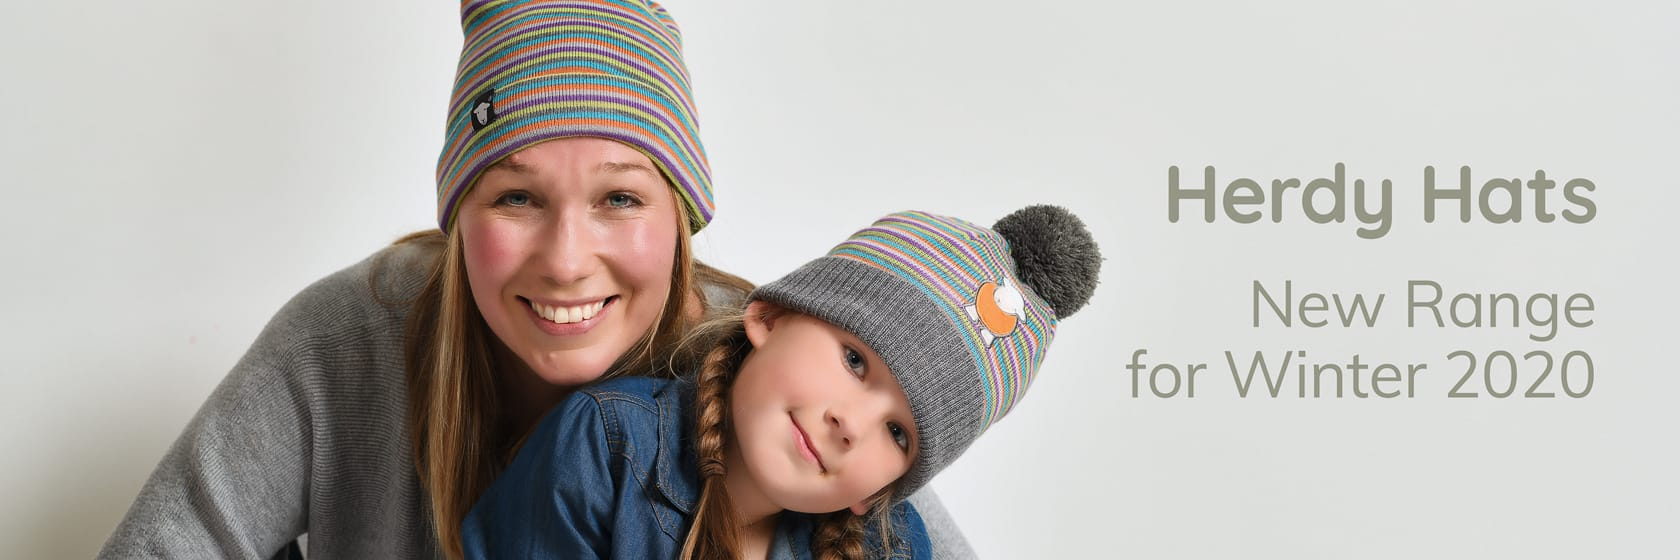 Check out the new Herdy Hats range for winter 2020